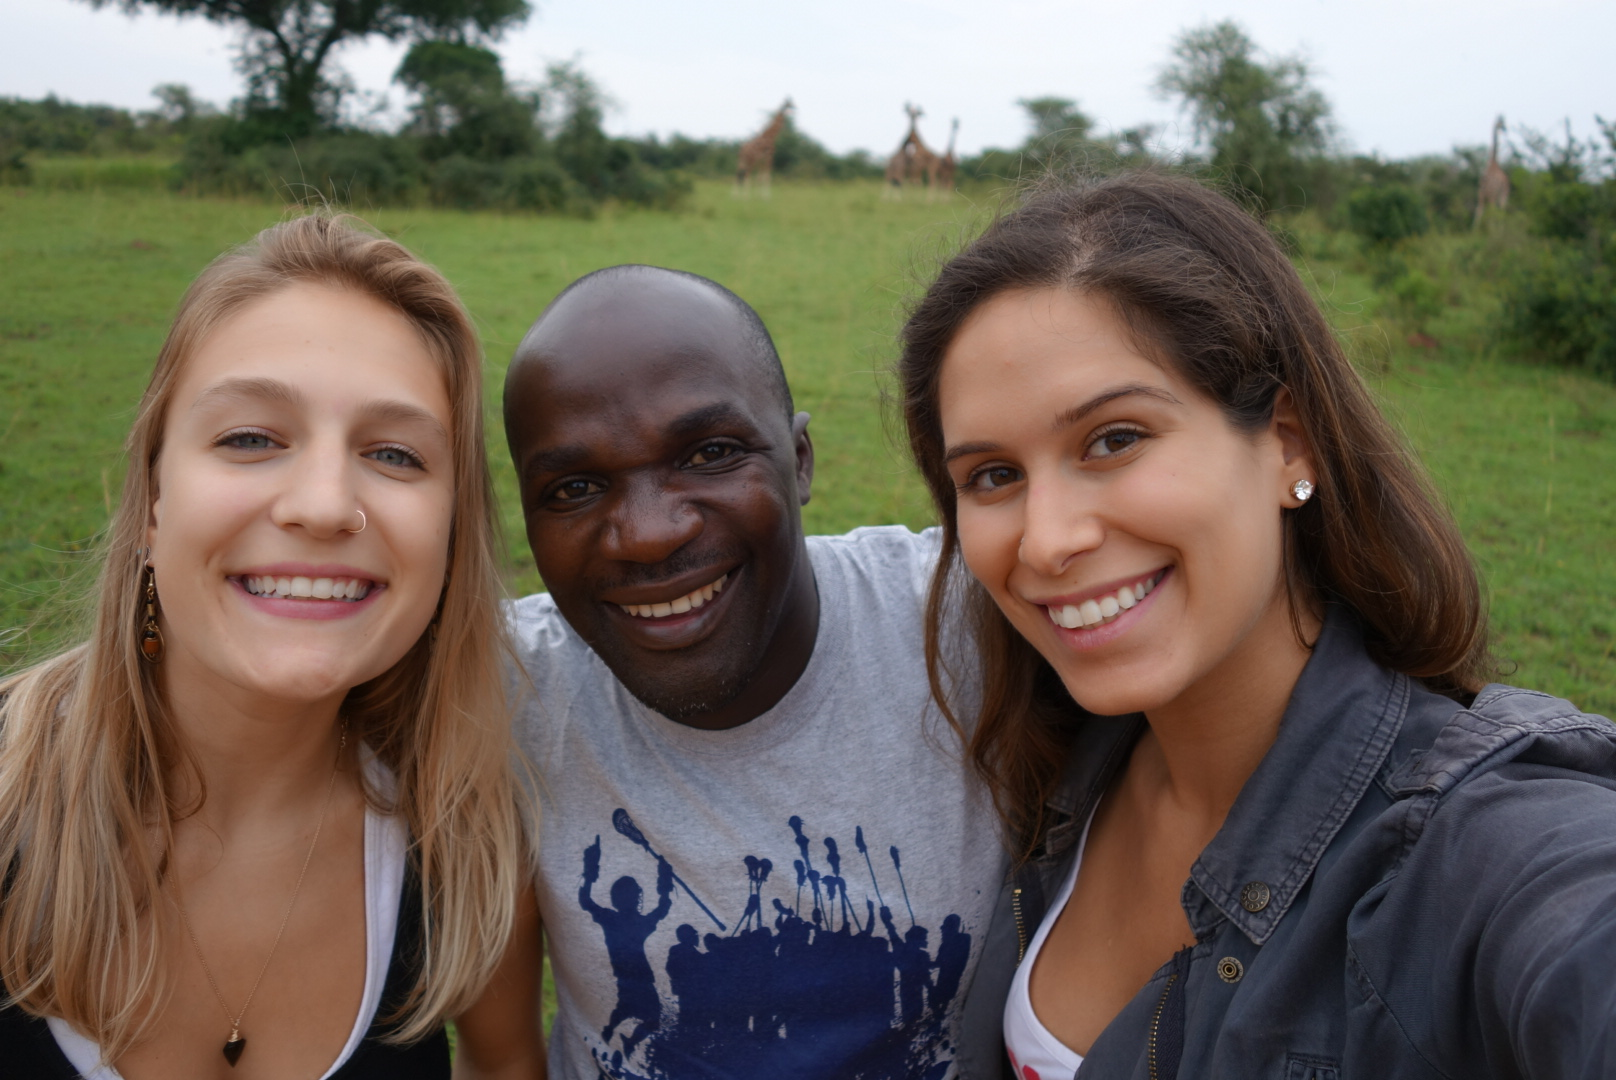 Jackie Laitsch (left) and Helena Record (right) with Ronald Nsimbe, one of the project's collaborators in Uganda.